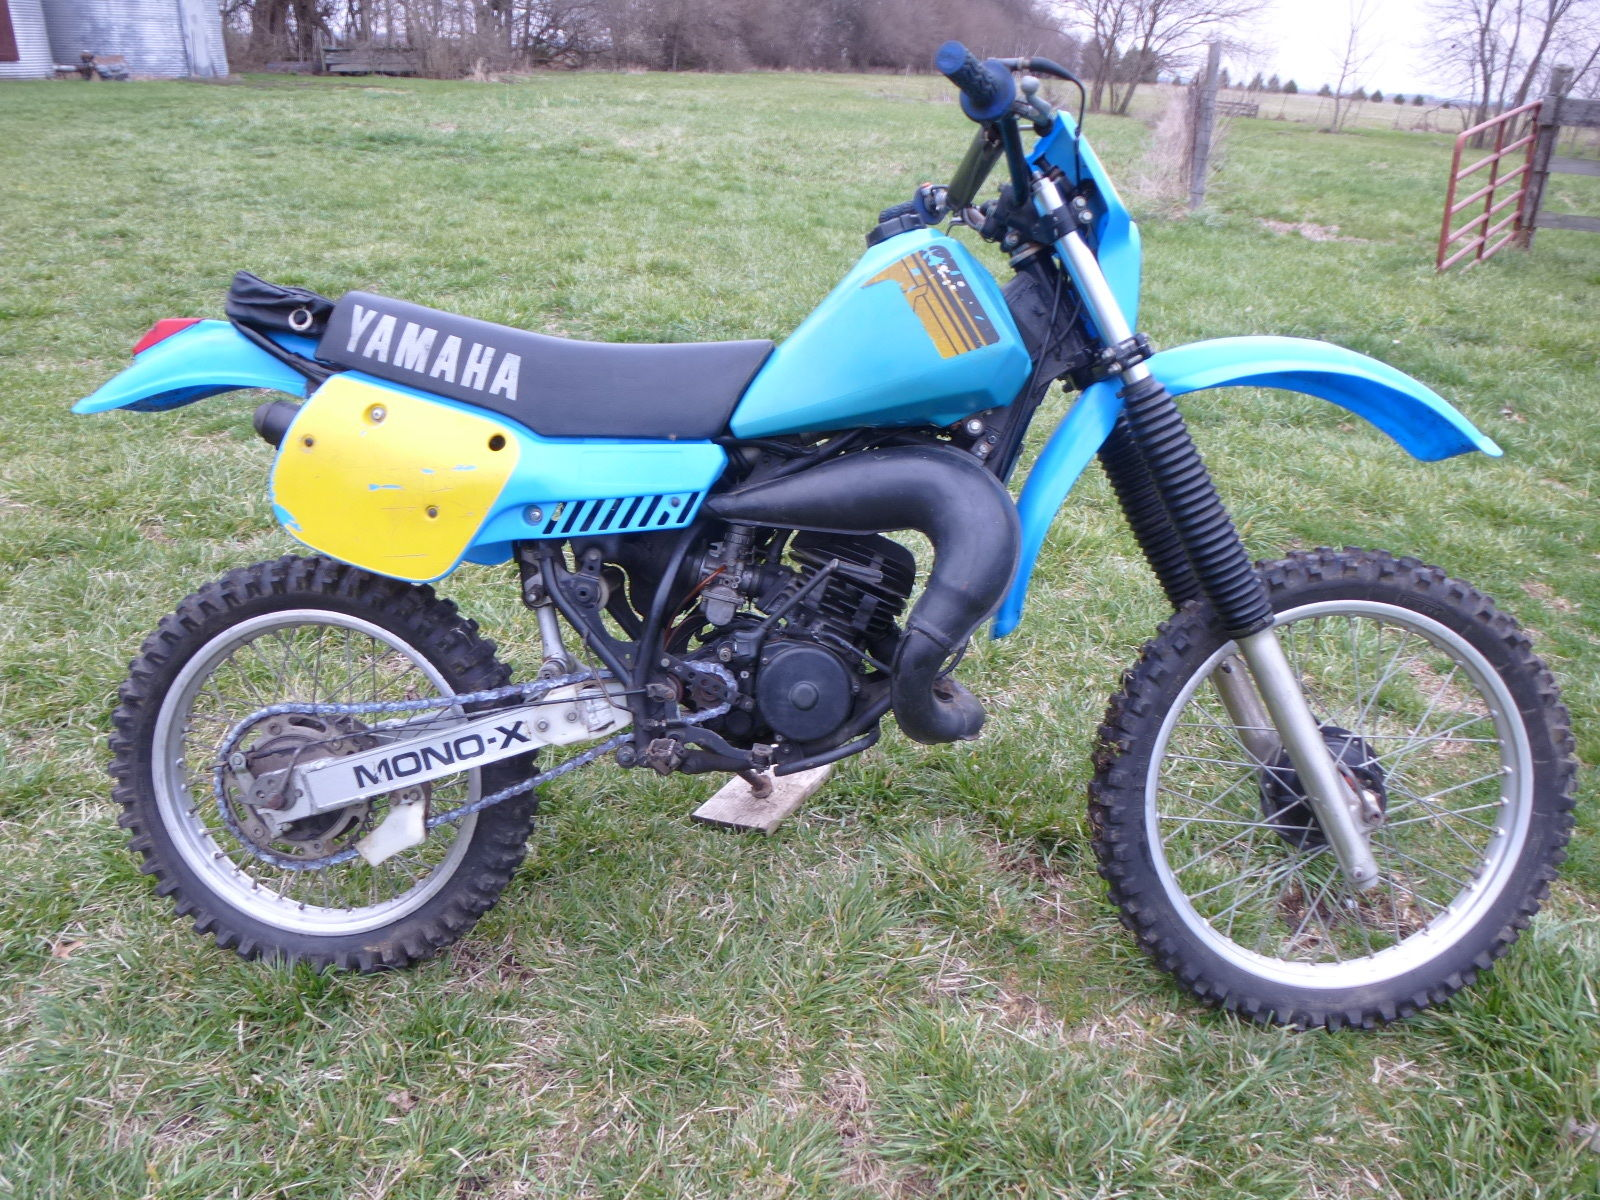 Yamaha 175 photo - 3